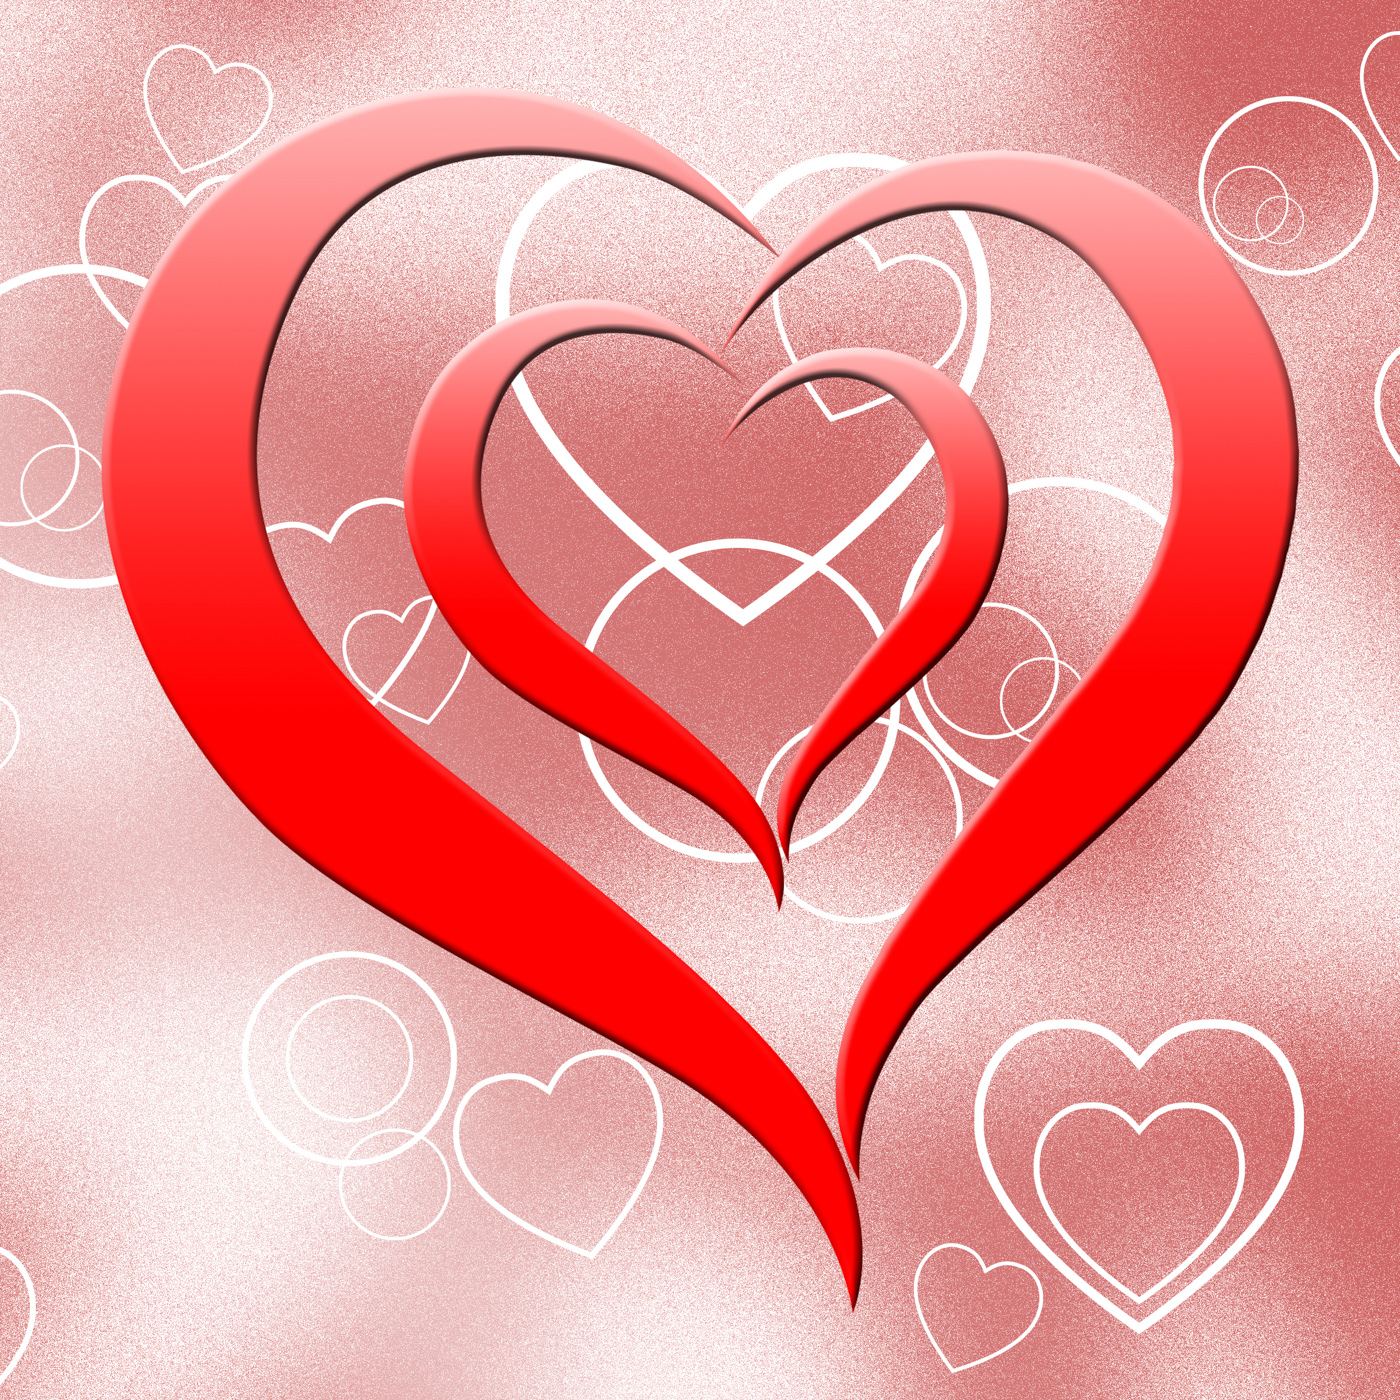 Free Photo Heart On Background Means Romanticism Passion And Love Amour Heart Heartshape Free Download Jooinn